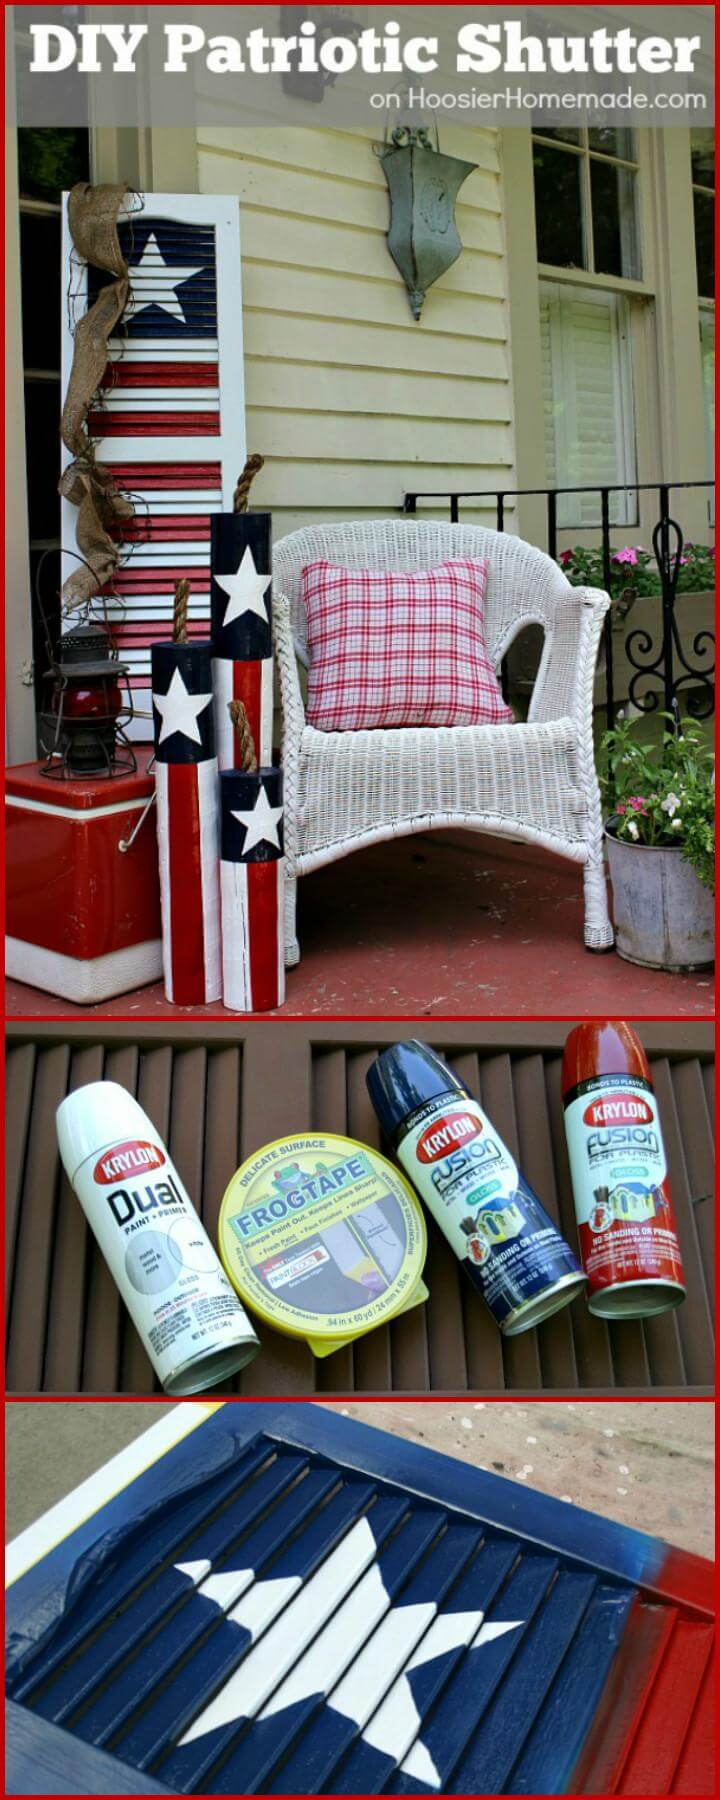 32 DIY 4th July Patriotic Shutter